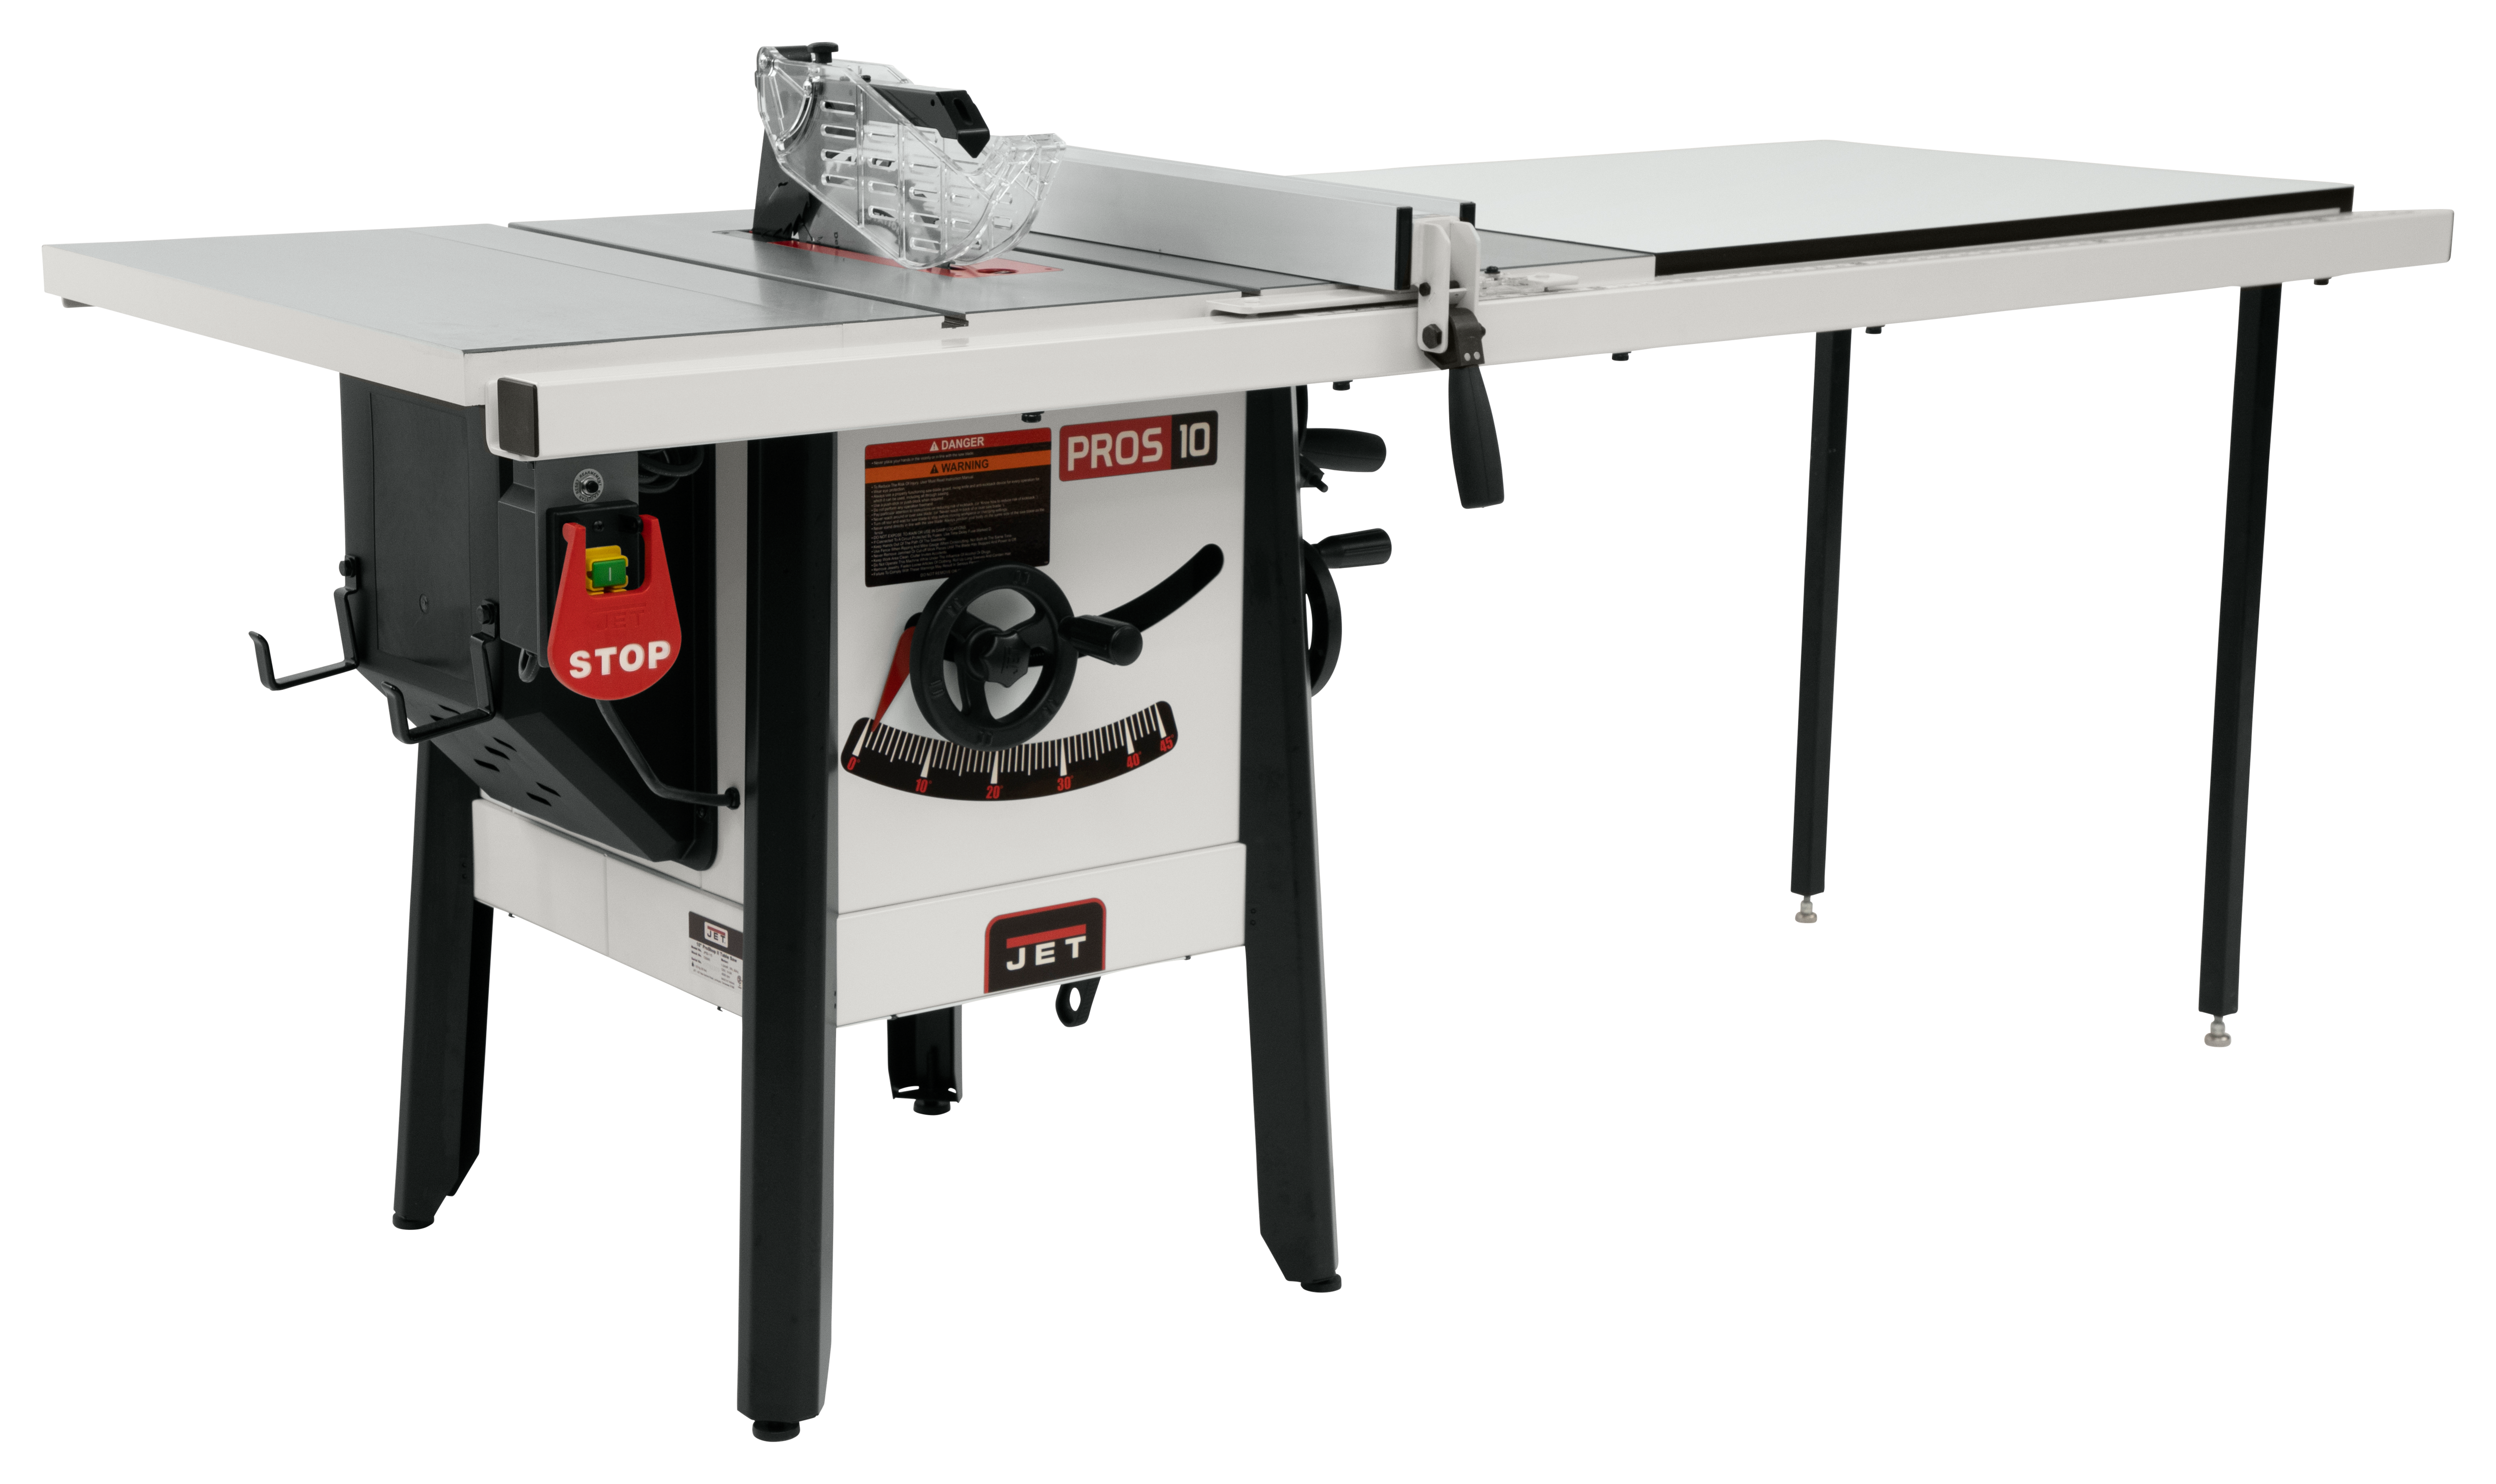 """The JPS-10 1.75 HP 115V 52"""" Proshop Tablesaw with Cast wings"""